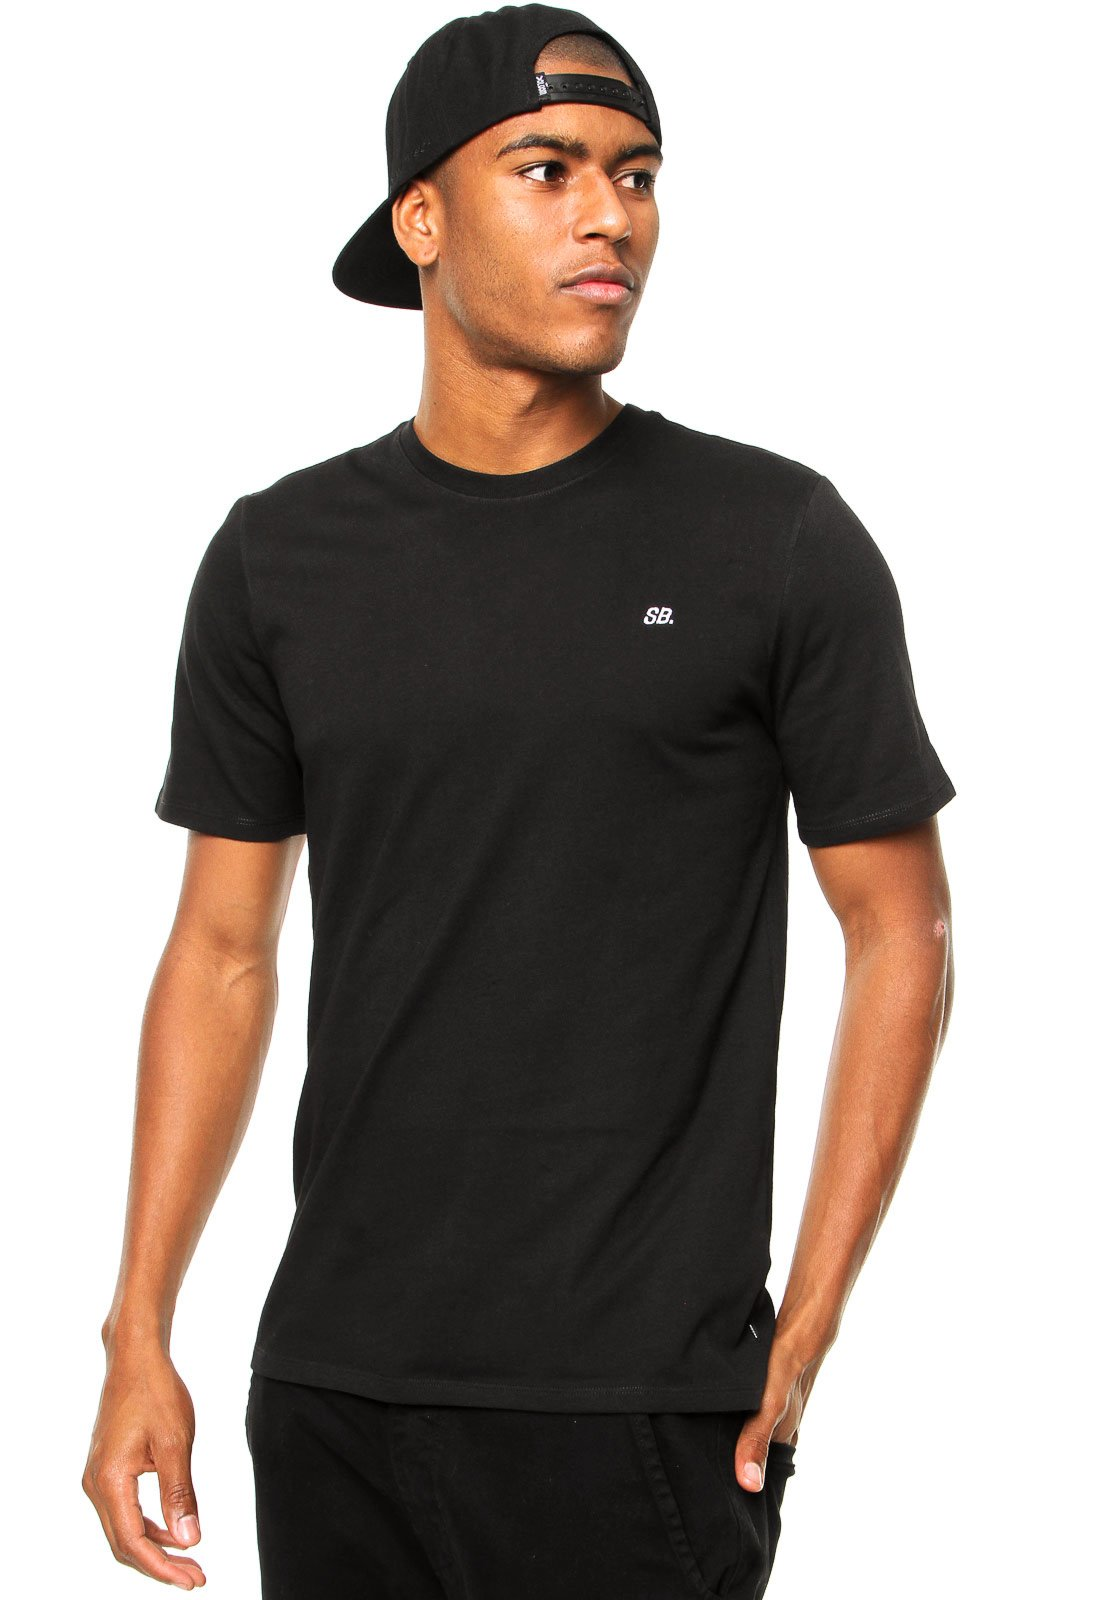 Nike SB DRI - FIT Dot Tee Black addf7b1034eae